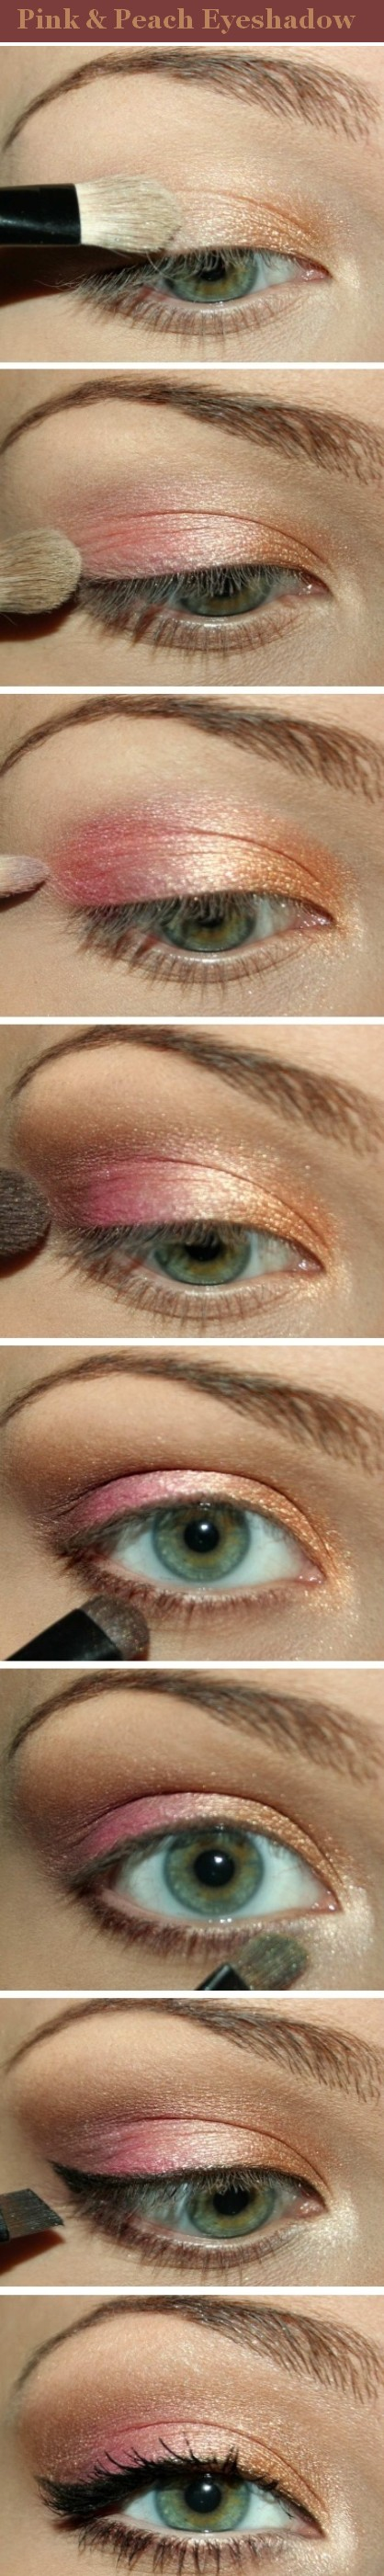 Pink and peach eyeshadow.